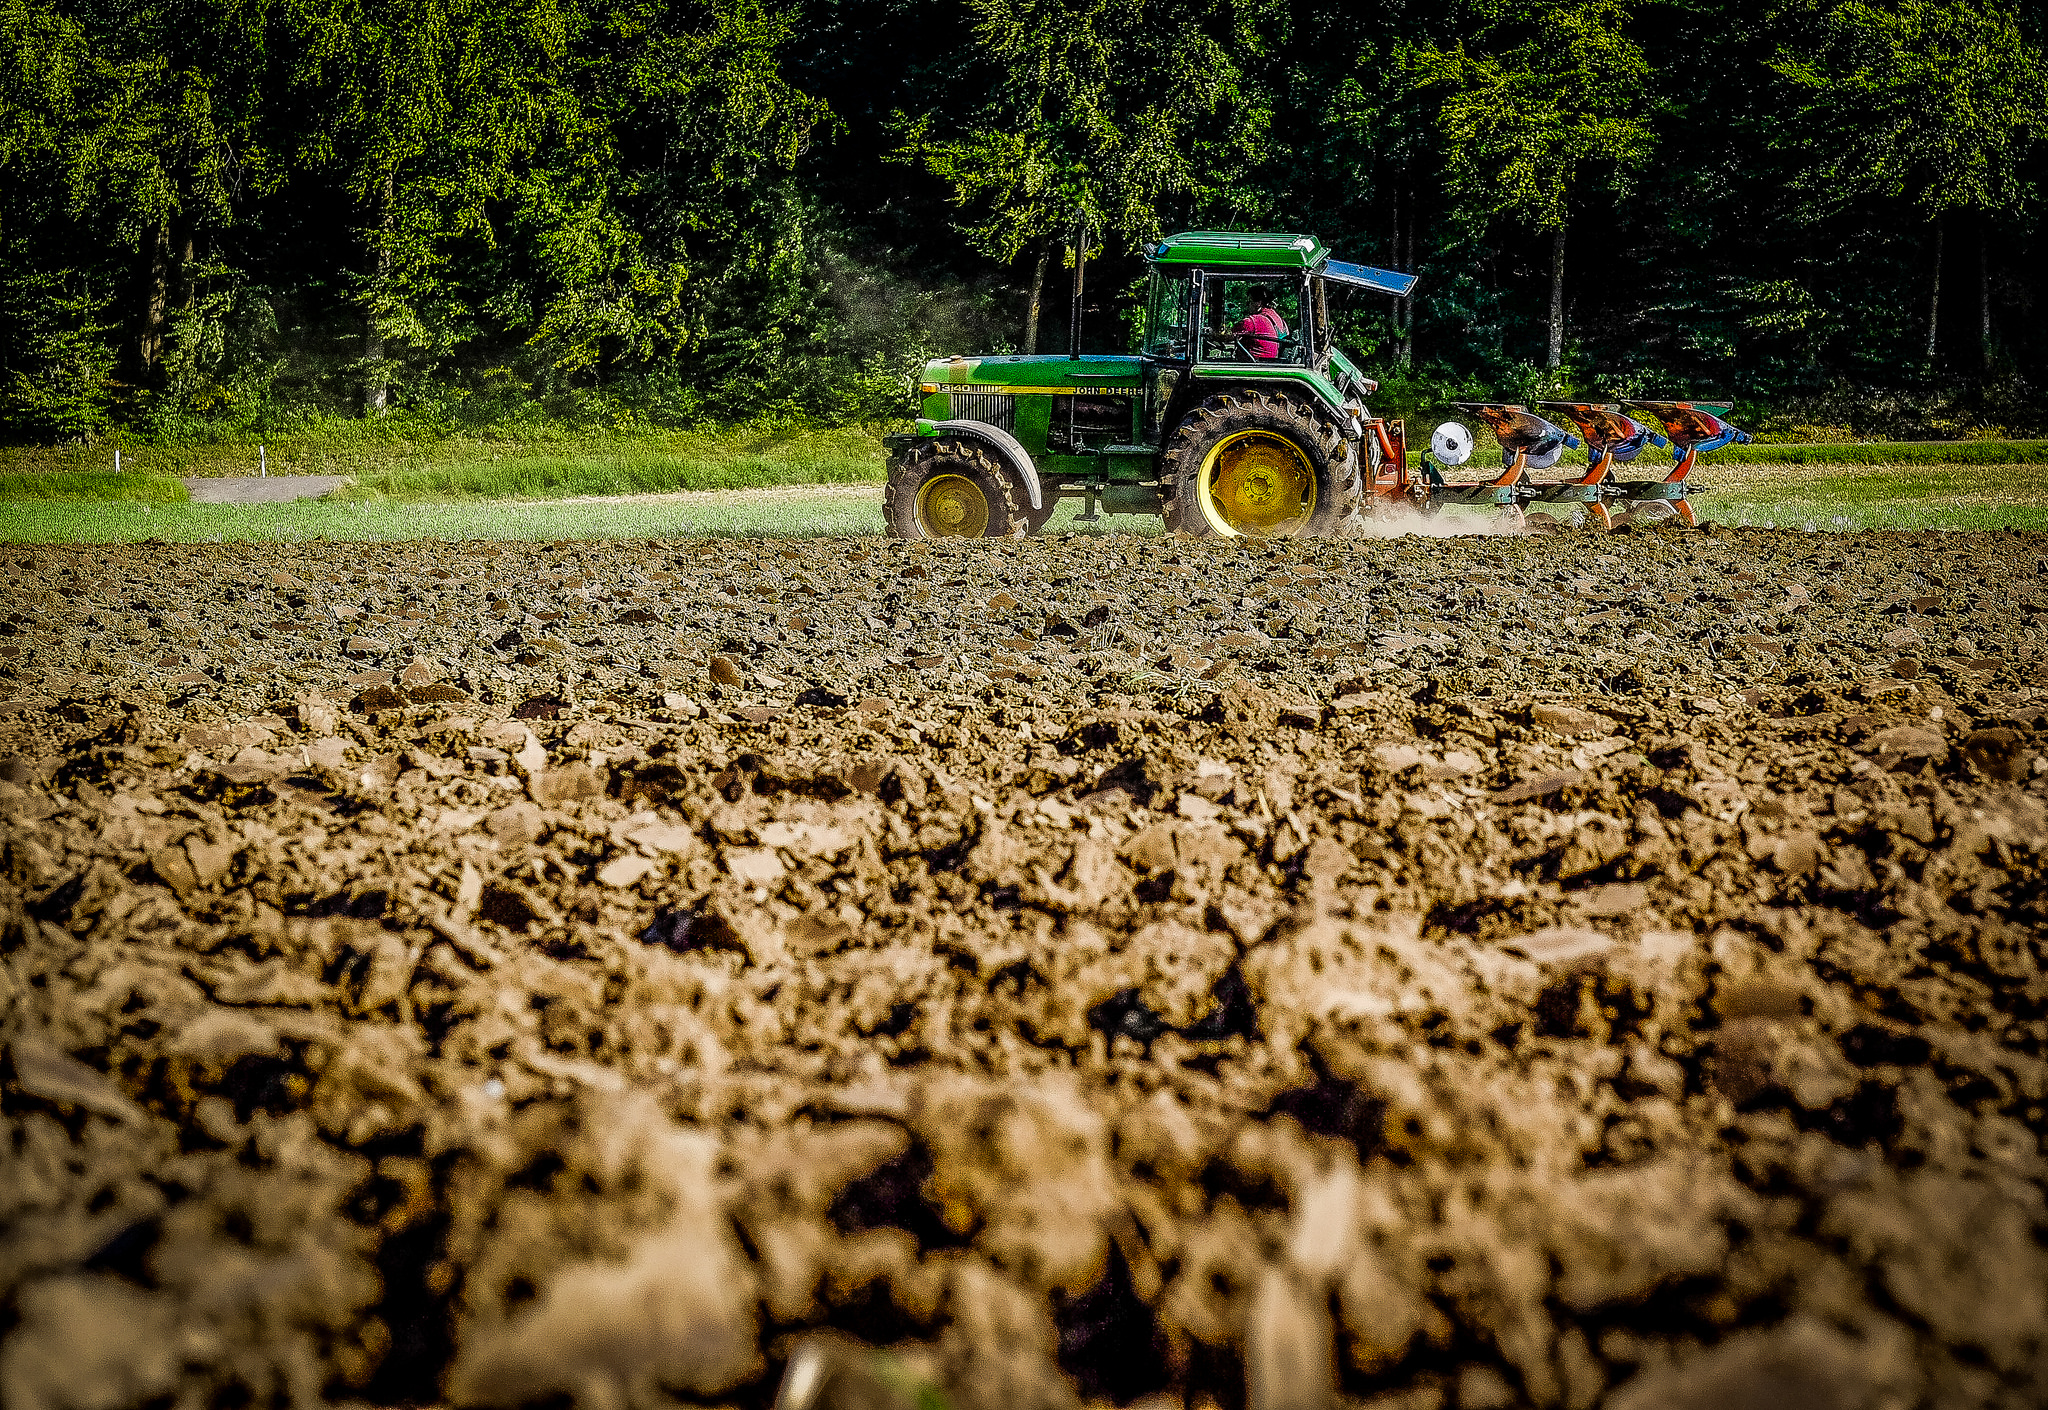 Tractor digging over a field